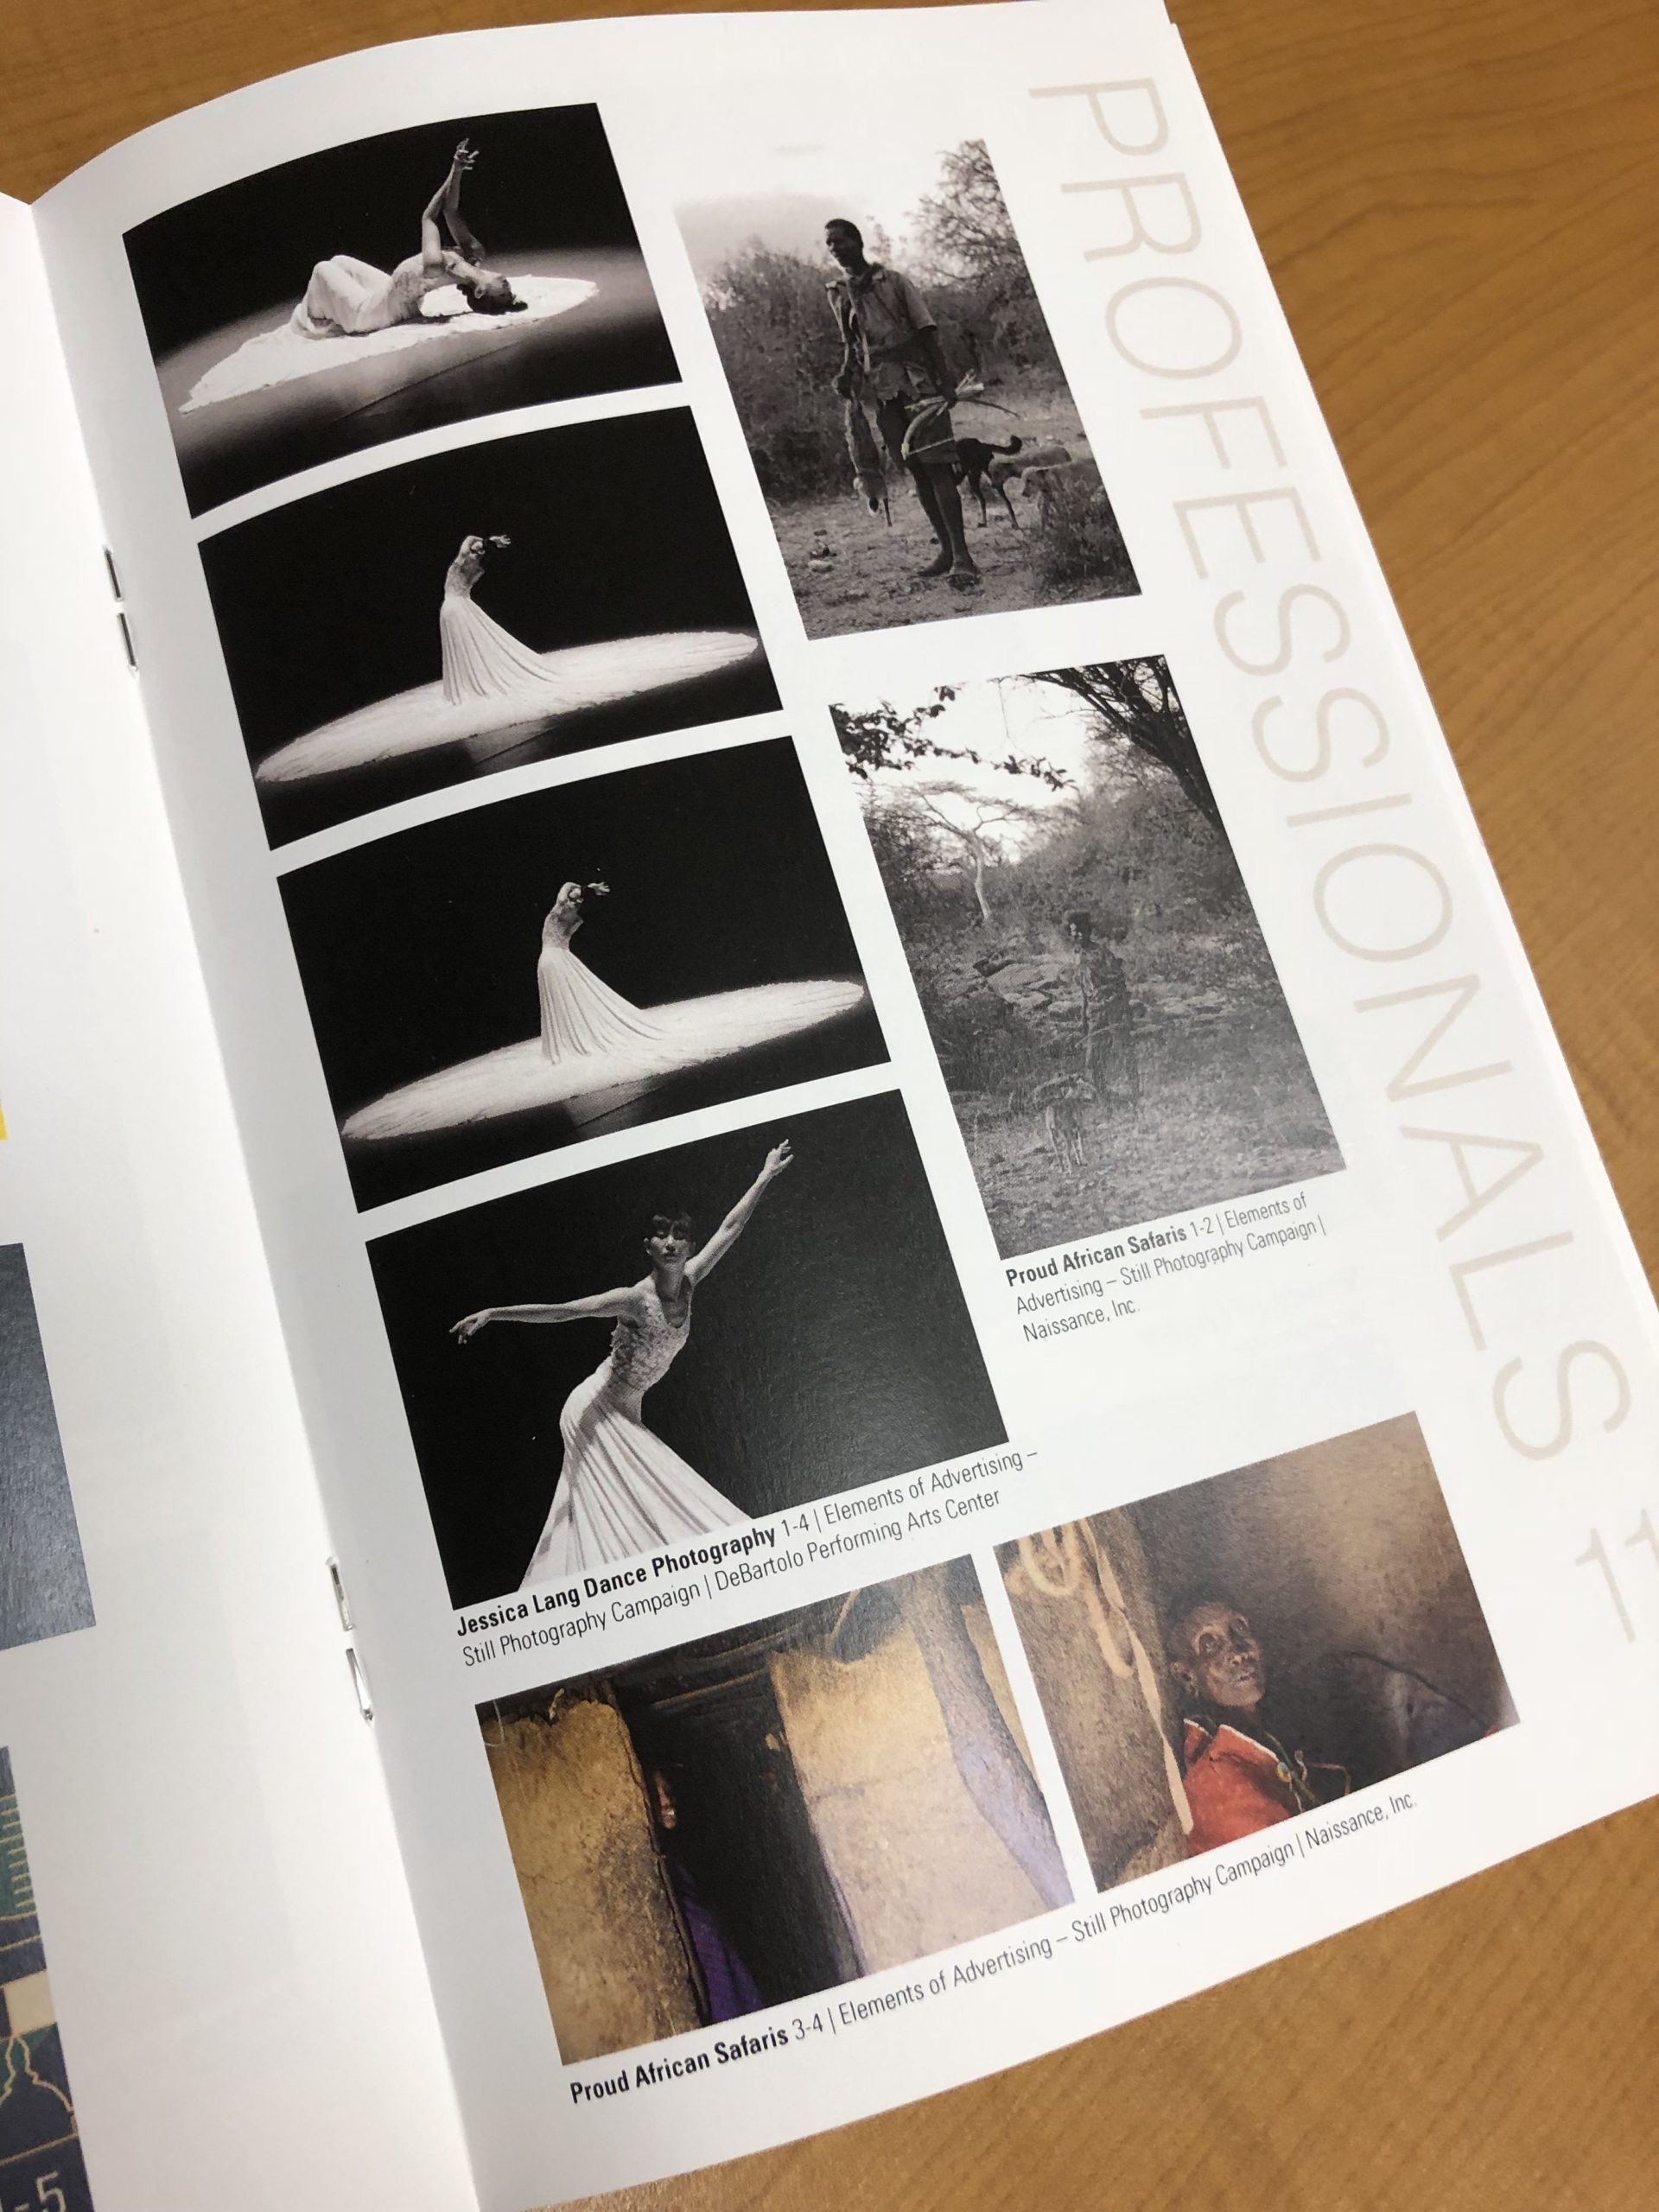 Page spread of images taken at the center